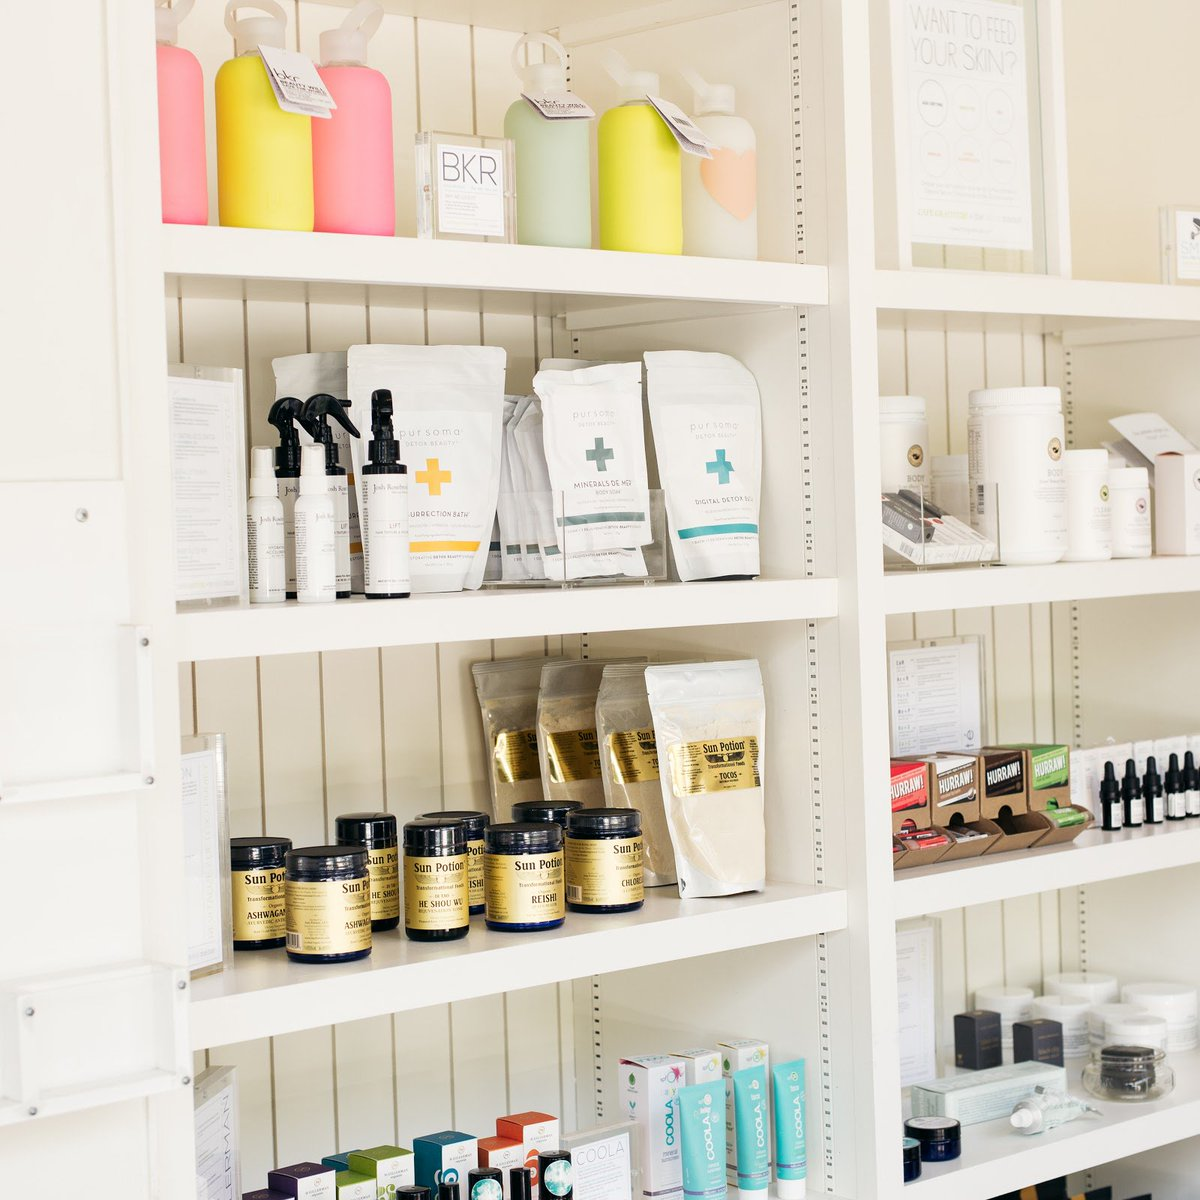 Our café beauty corner. Shop @TheDetoxMarket for natural beauty and wellness products: https://t.co/NU0kCnq9zA https://t.co/HBIgsAF72q